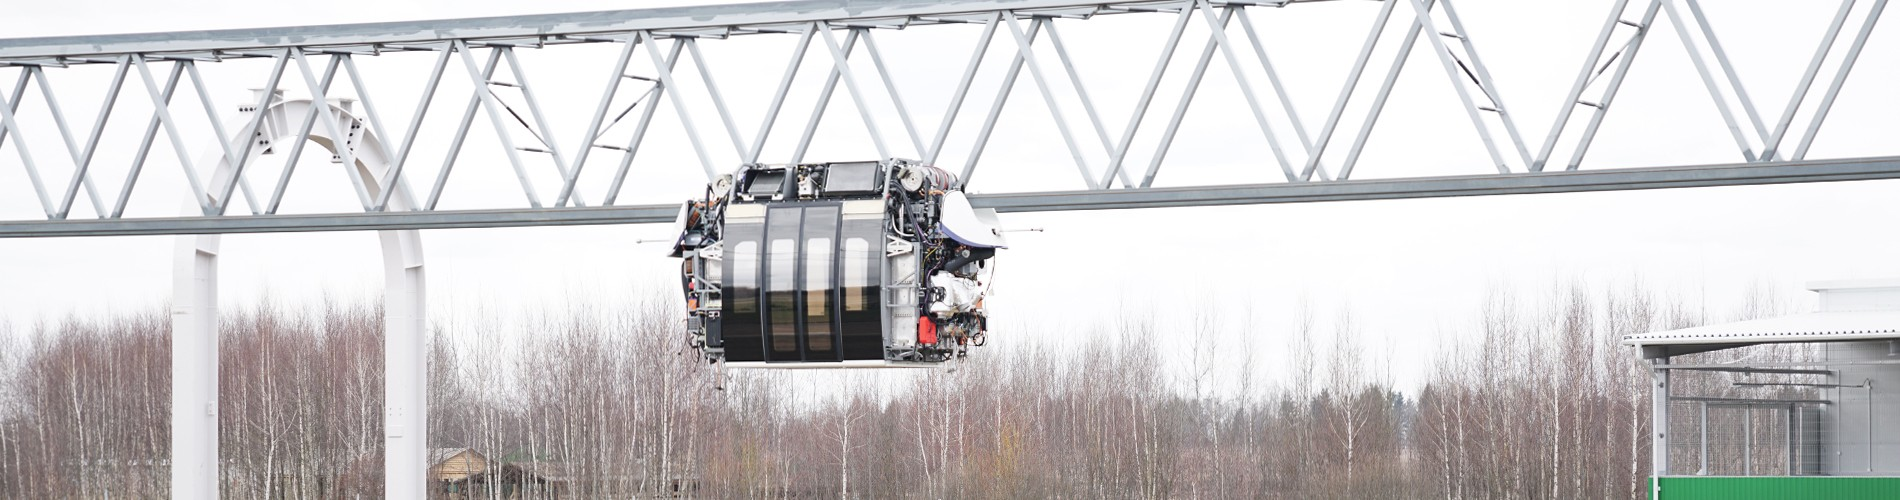 Unicar U4-431-01 enters testing at EcoTechnoPark